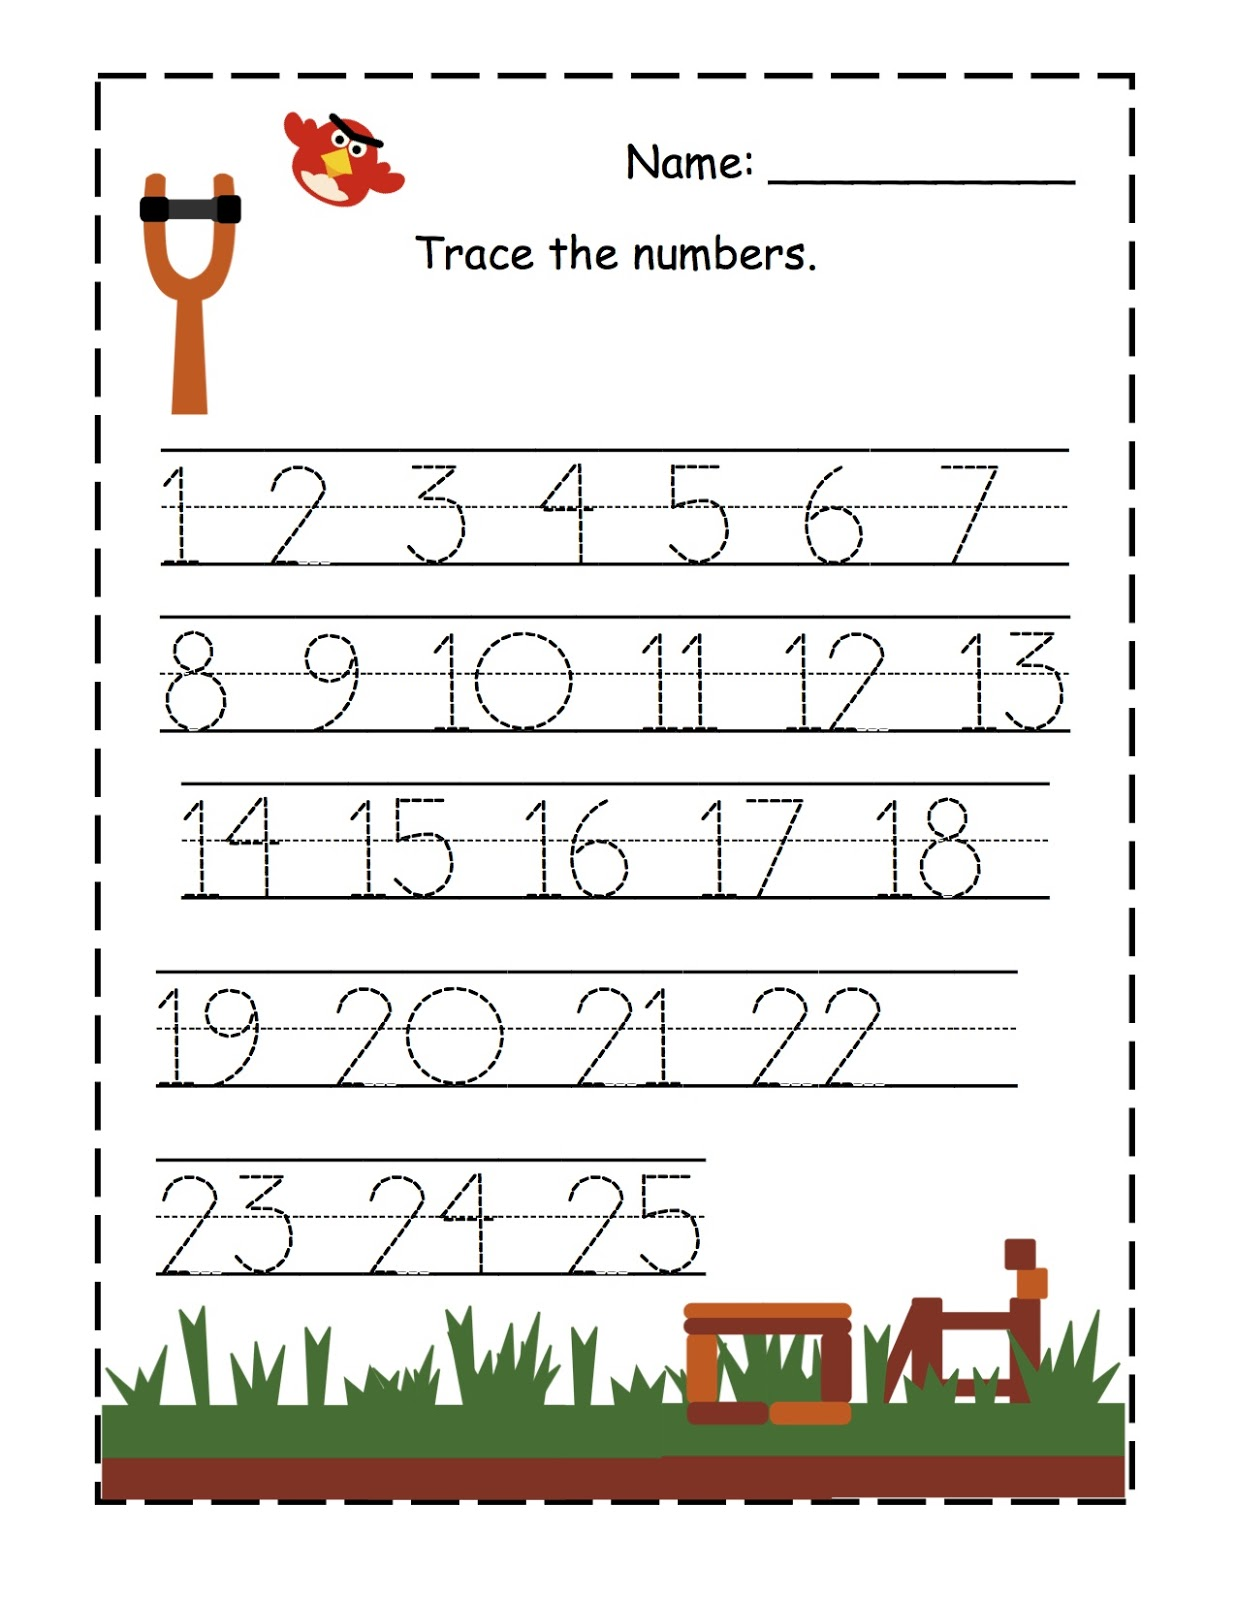 Worksheet Tracing Numbers 120 Wosenly Free Worksheet – Number Tracing Worksheets 1-20